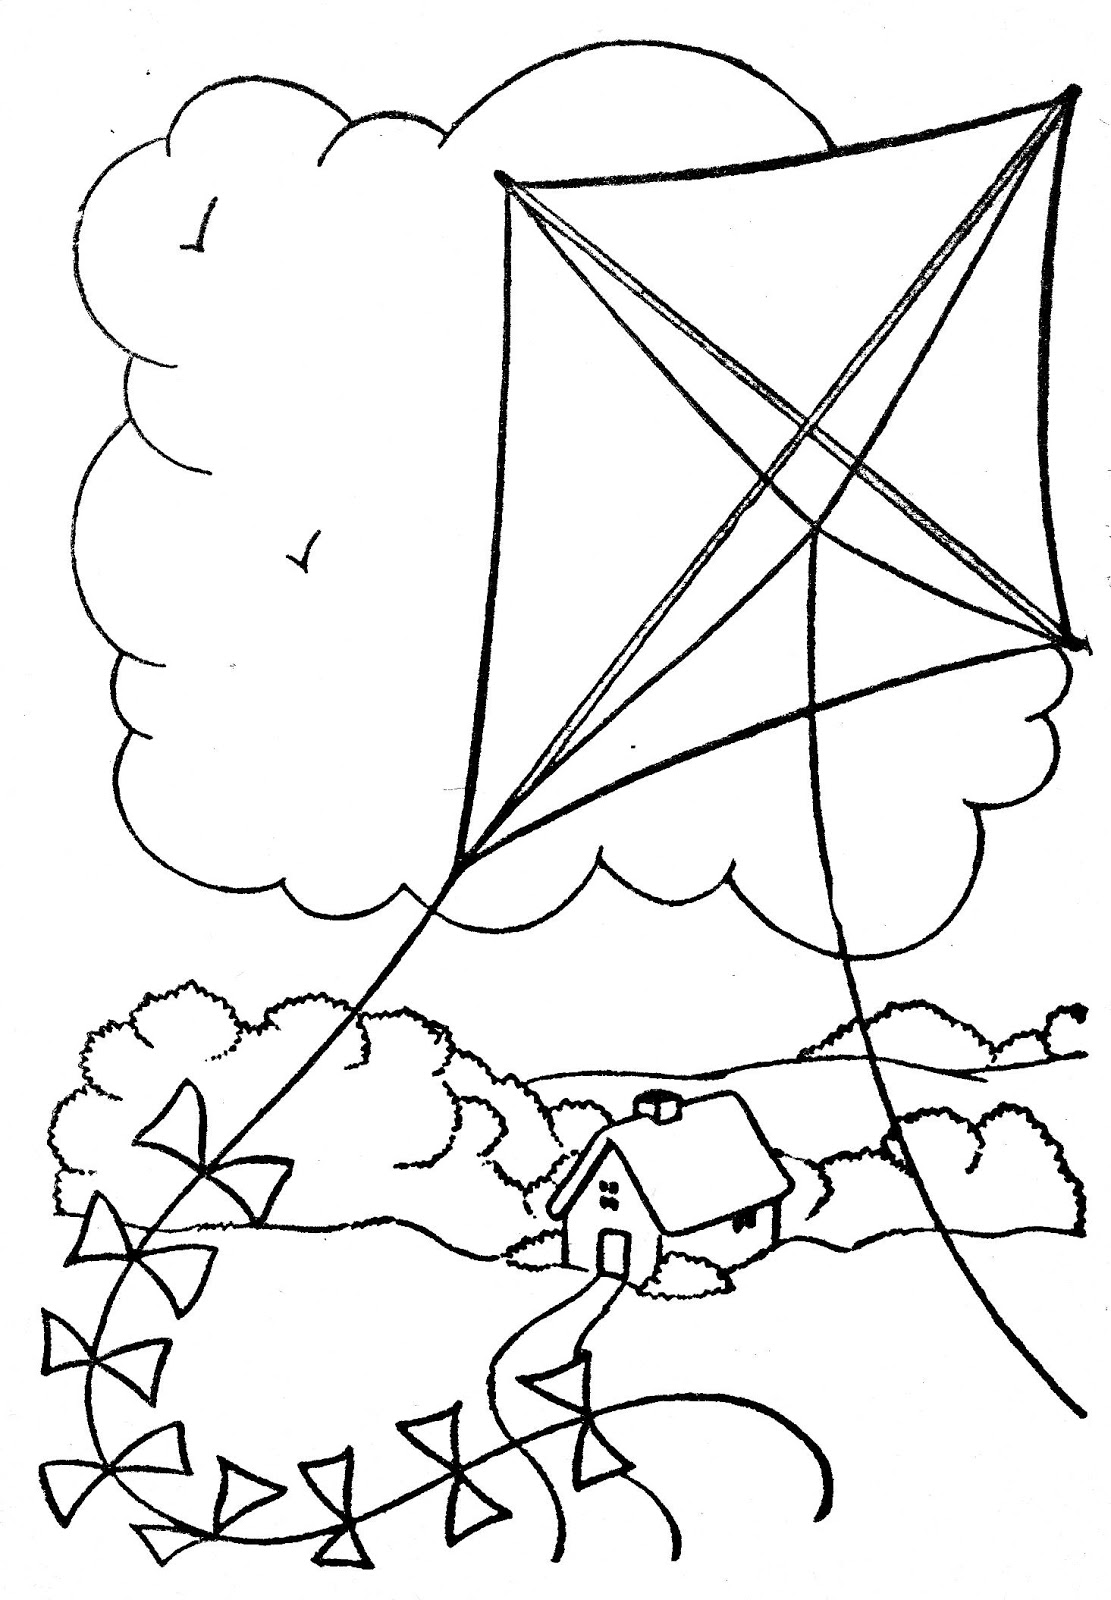 Skyrim Lydia Coloring Pages Sketch Coloring Page